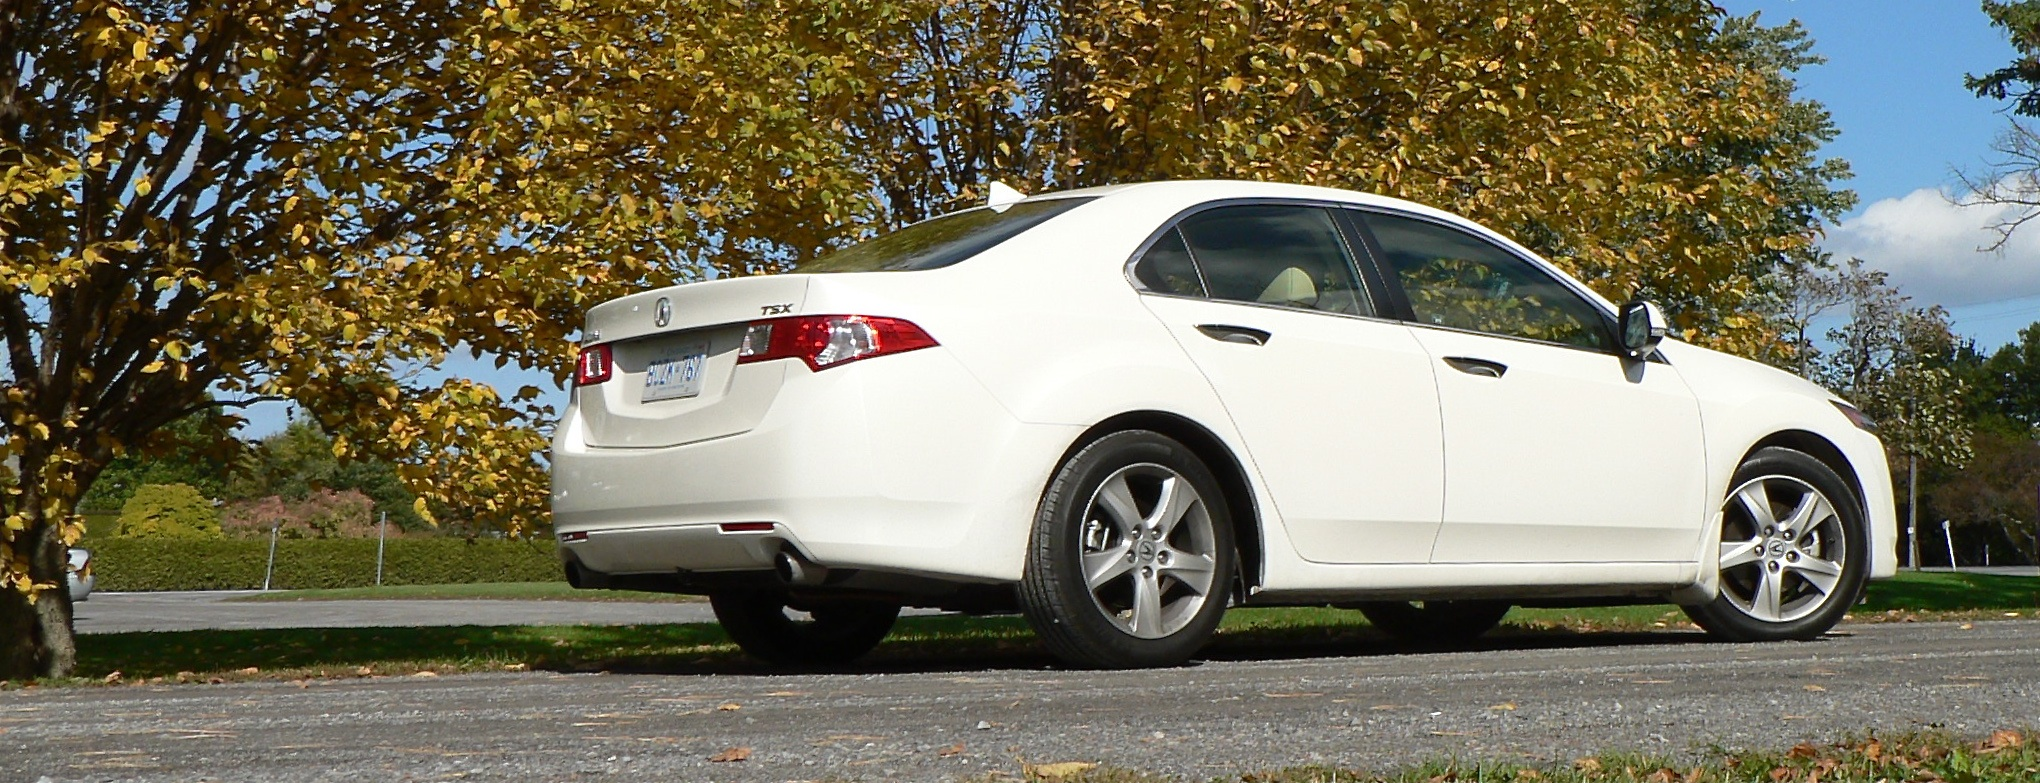 Attractive 77th Post1. THIRD PLACE: 2009 Acura TSX